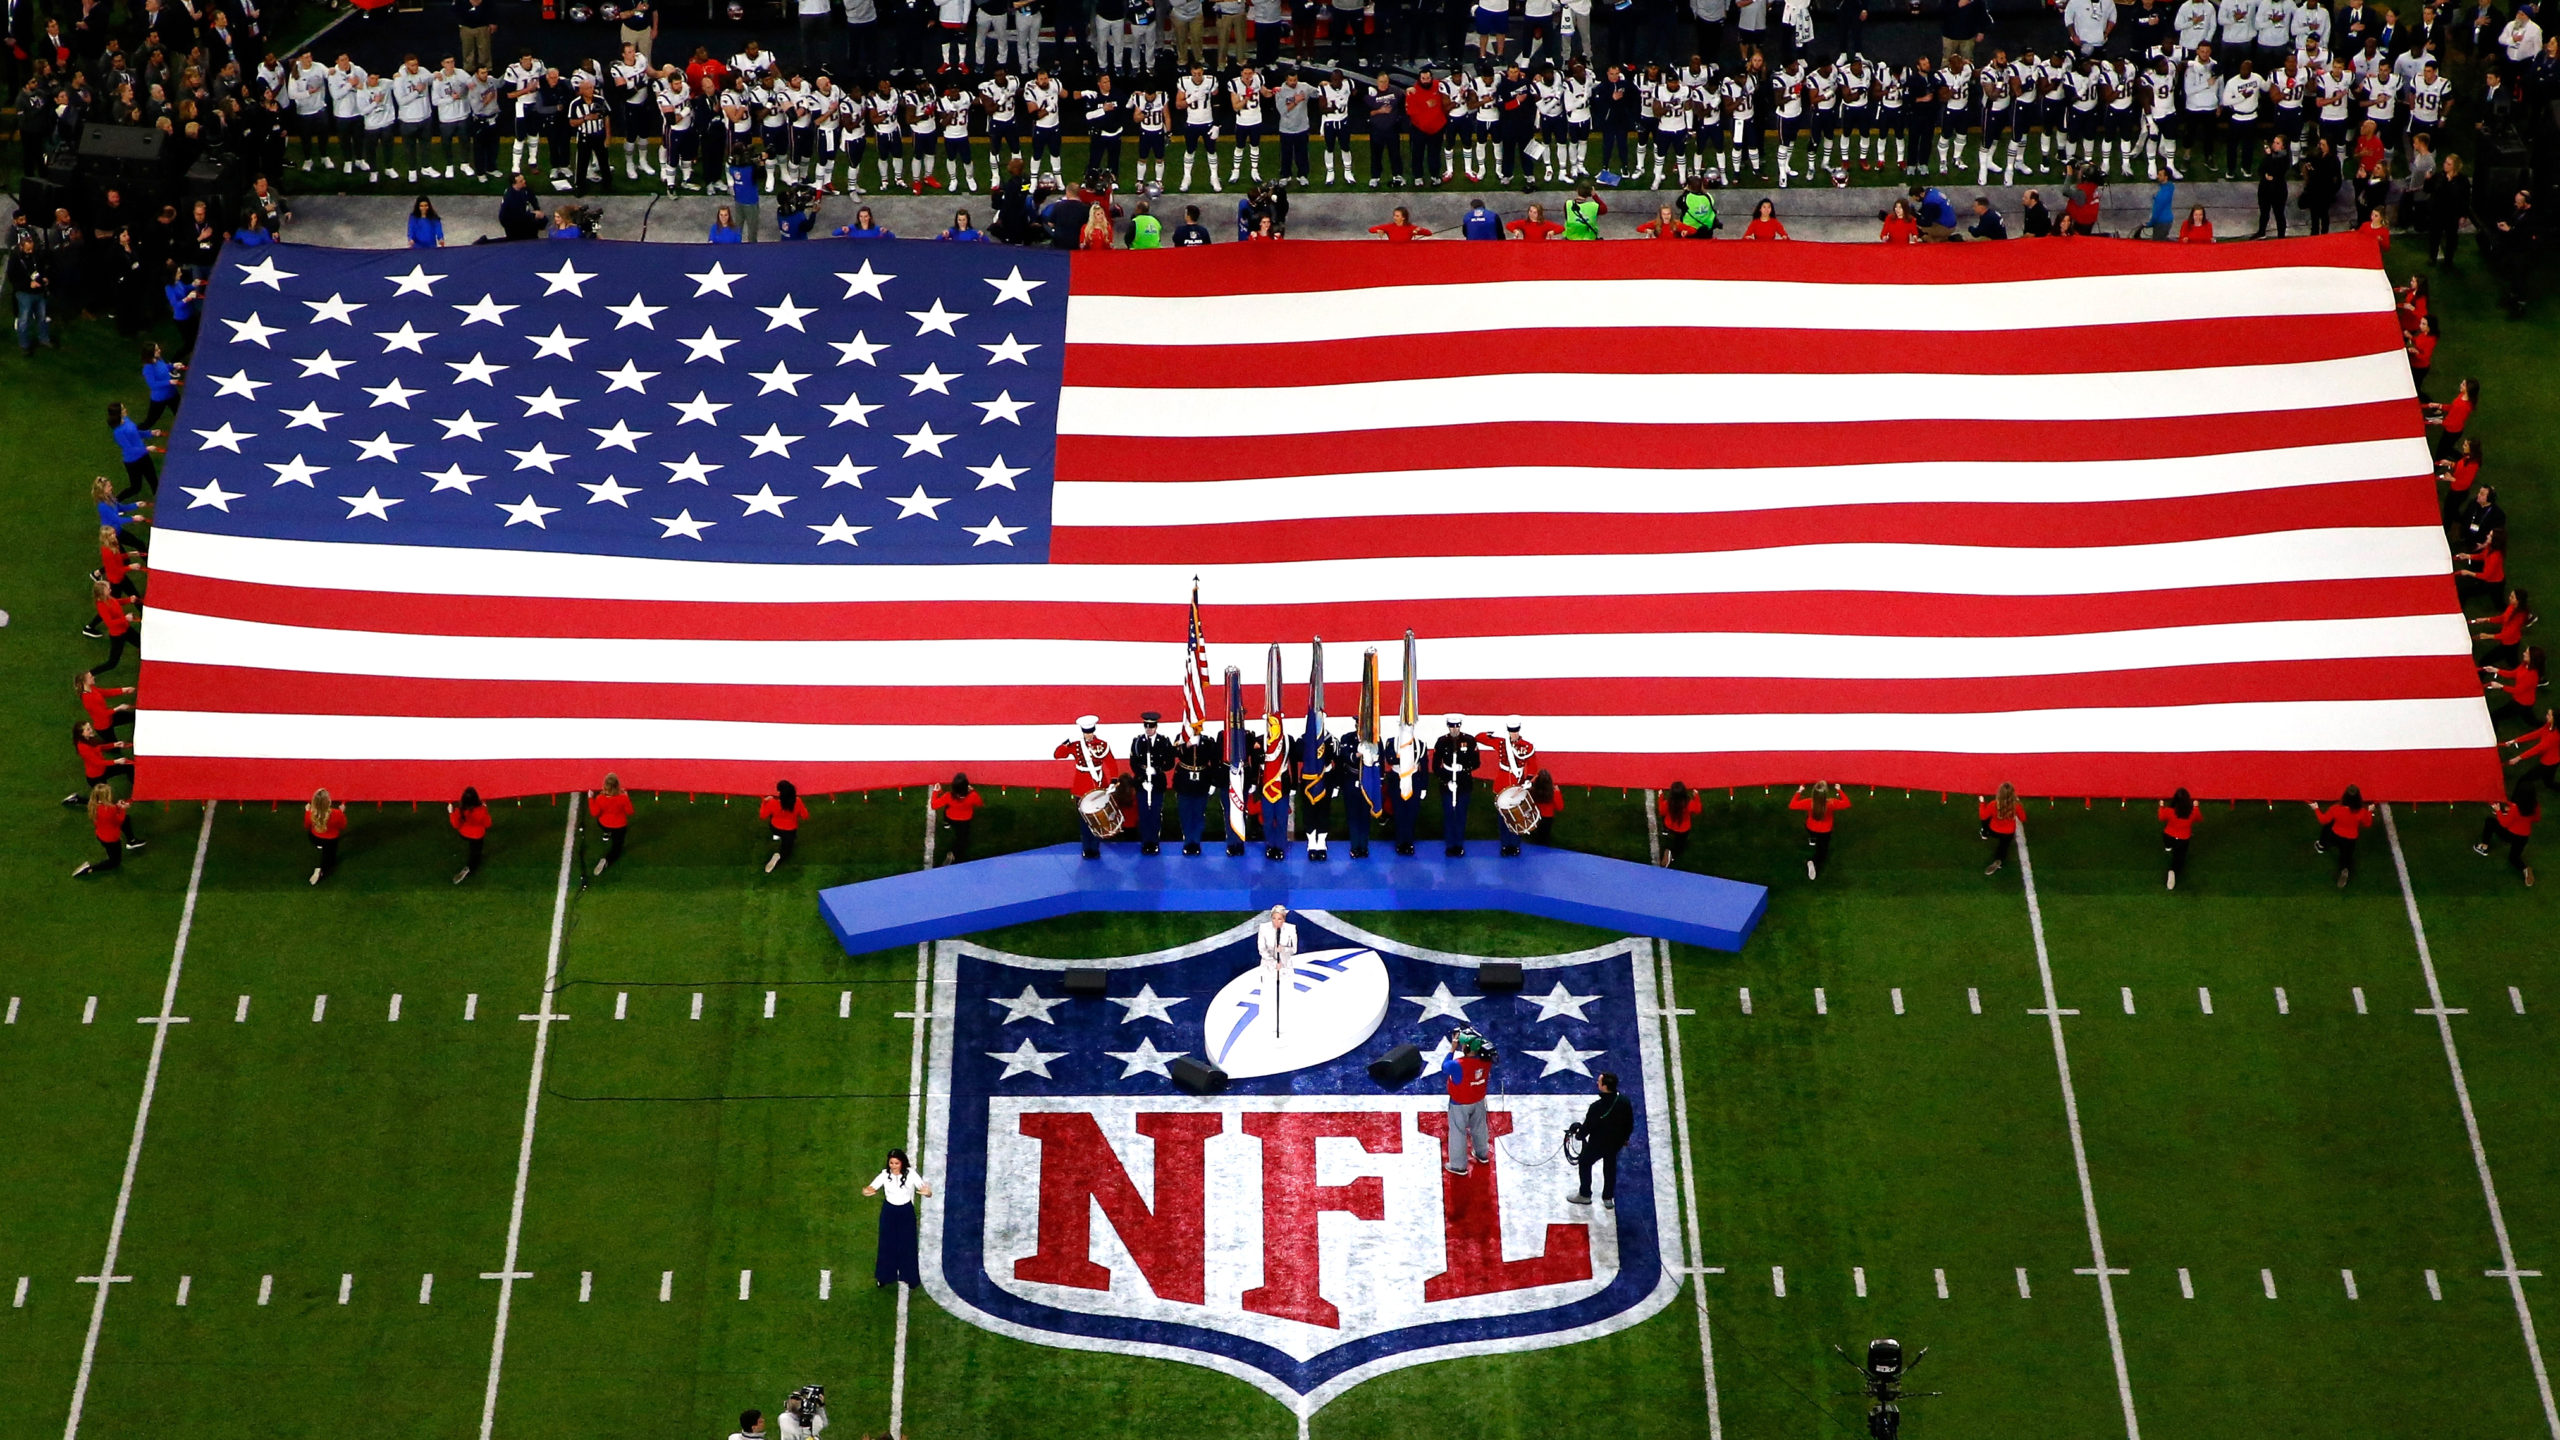 Watch Nfl Airs Patriotic Tribute To The American Flag During